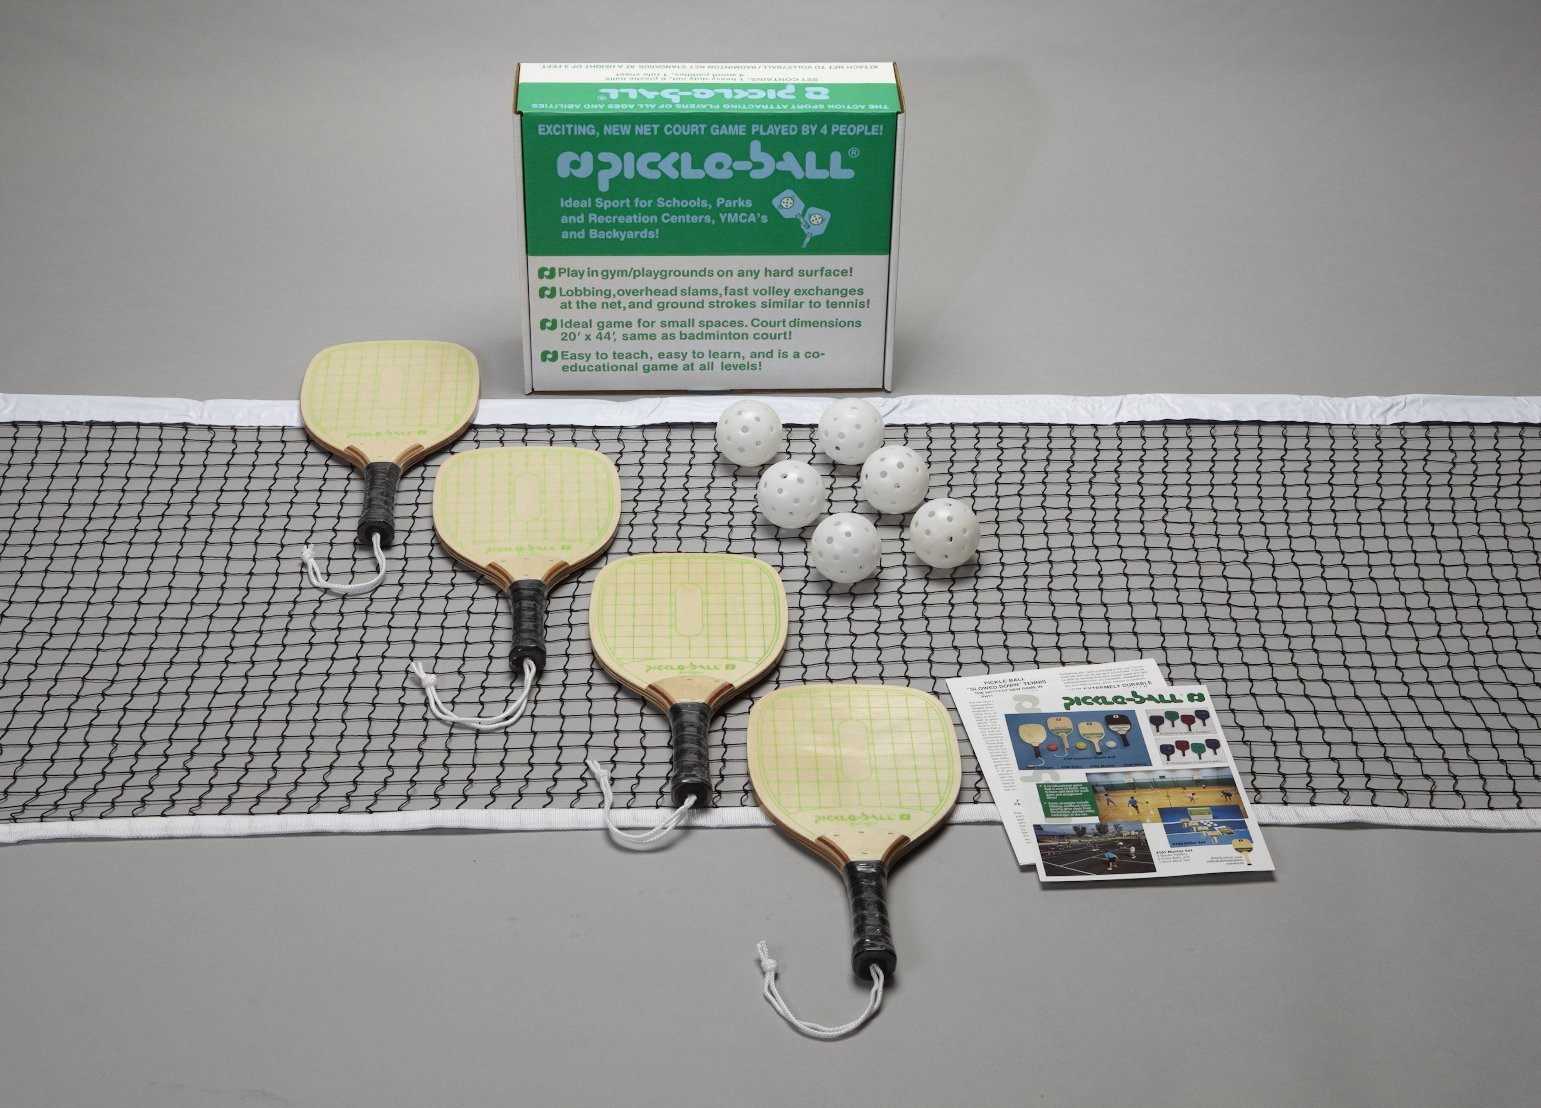 Pickle-Ball 2.0 Tournament Set- Swinger Paddle - Taiwan by Pickle-Ball